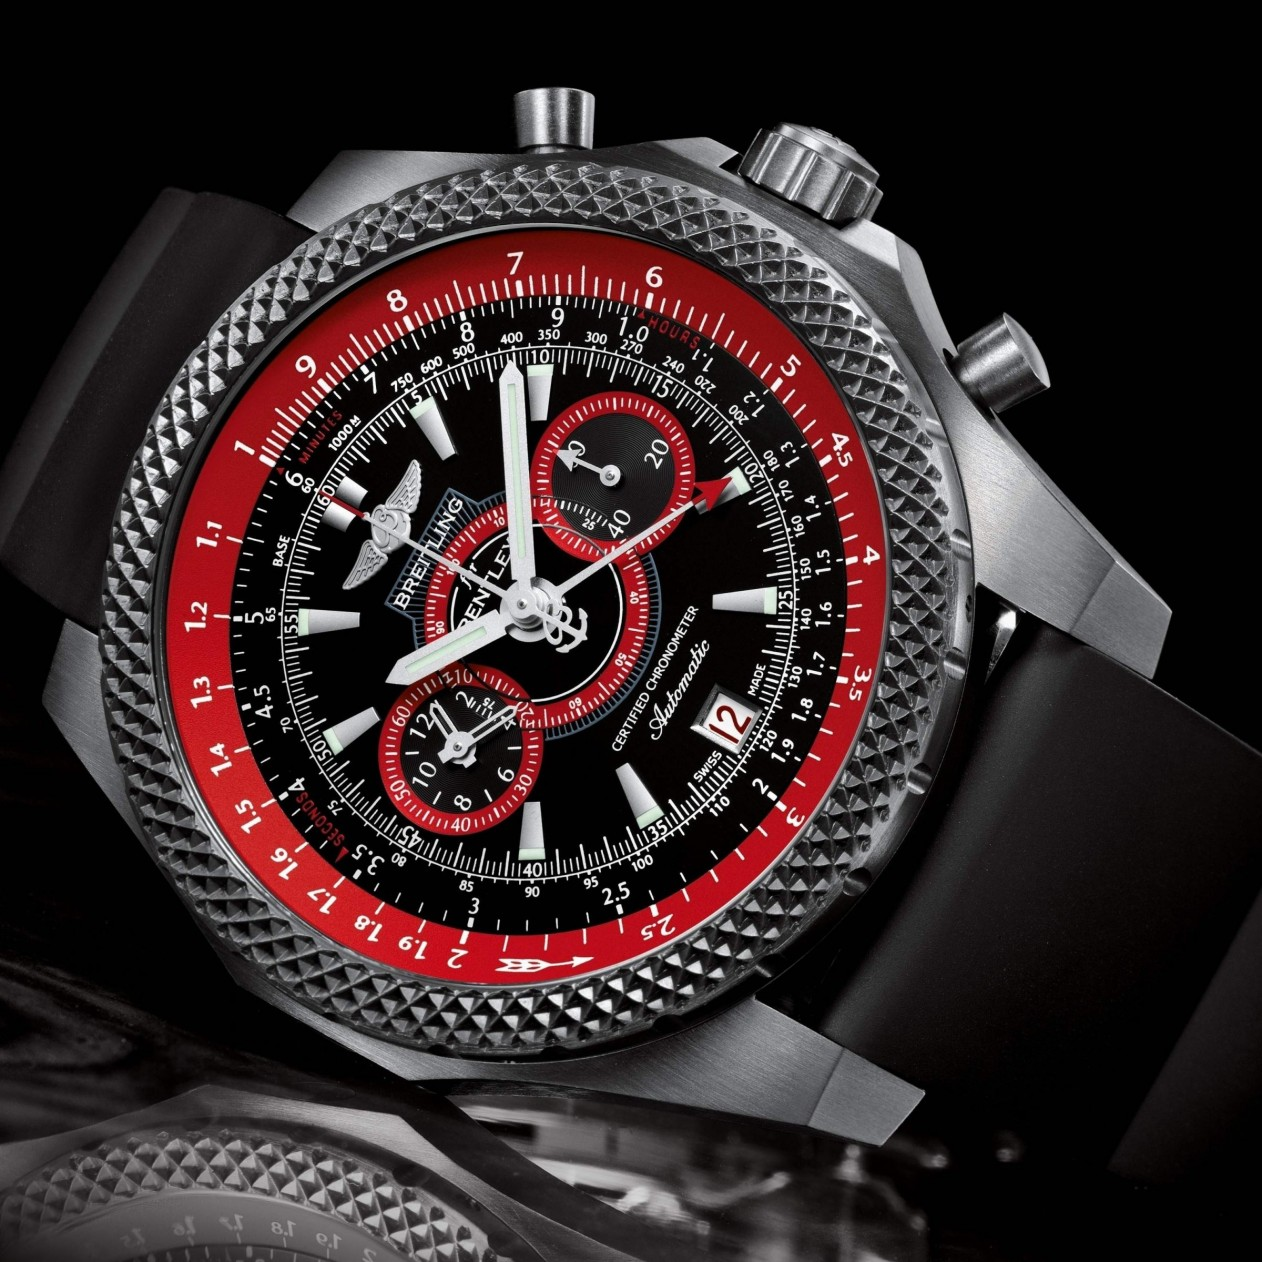 Breitling Watch Wallpaper for Apple iPad mini